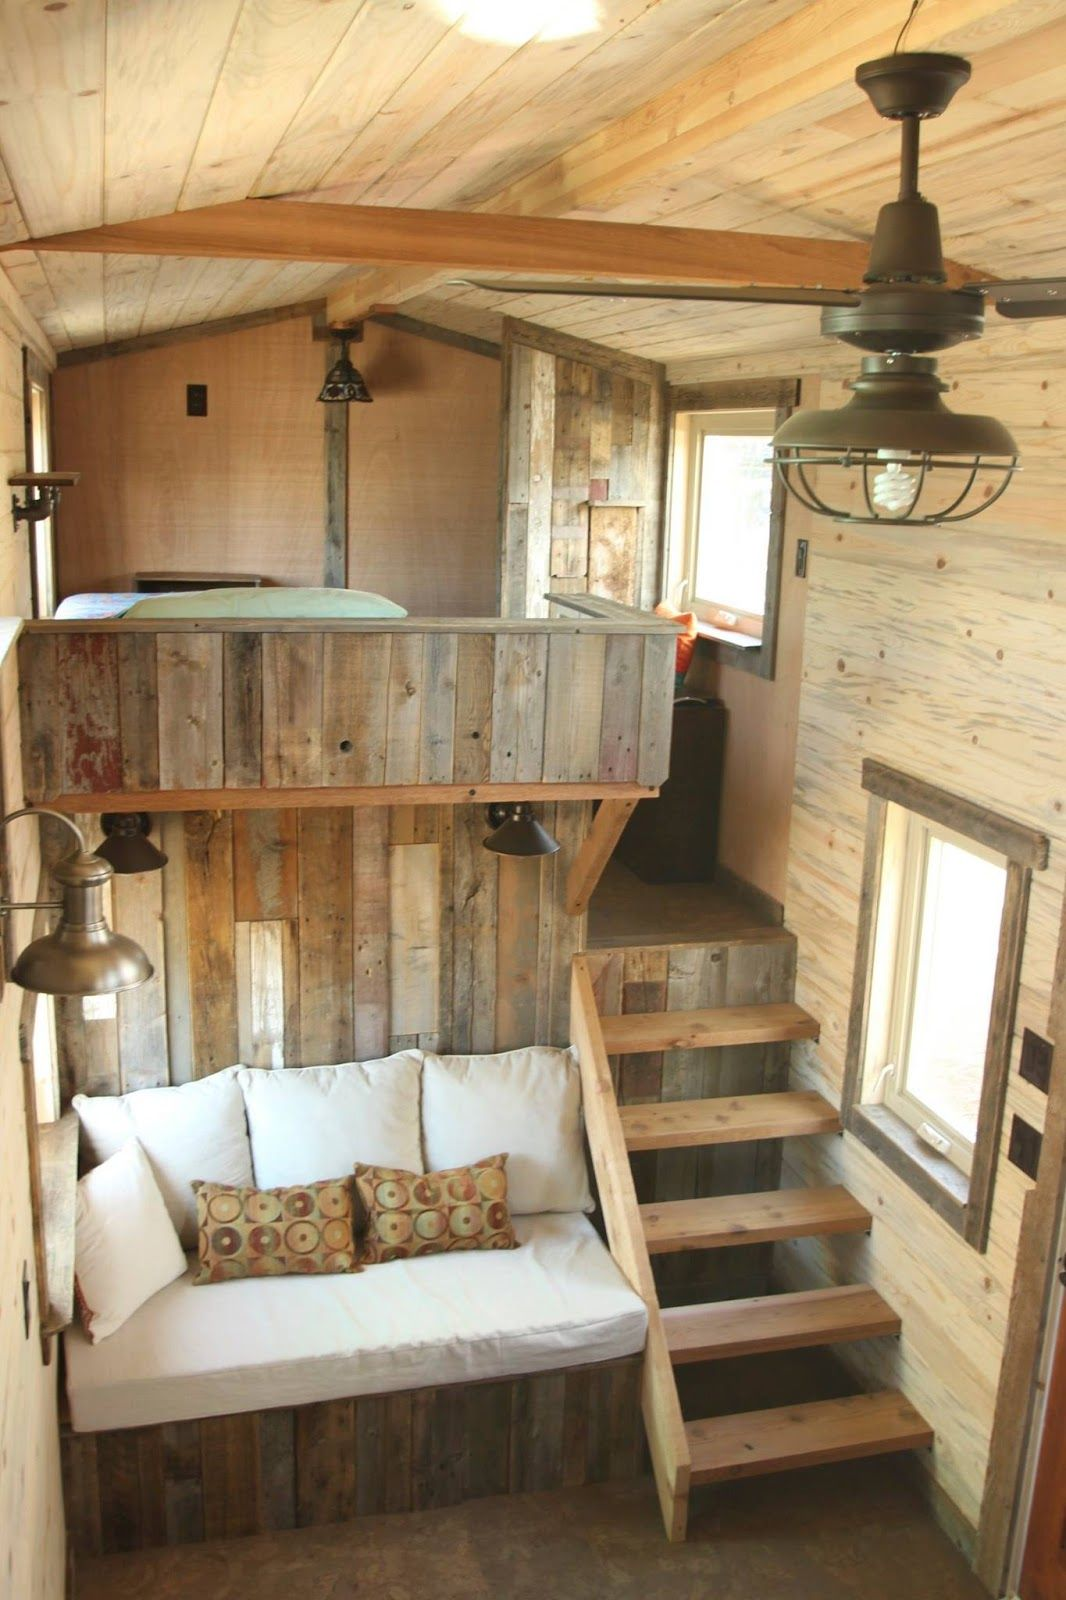 Kitchenette Ideas 6 Tiny House Plan Designs Around The World Join The